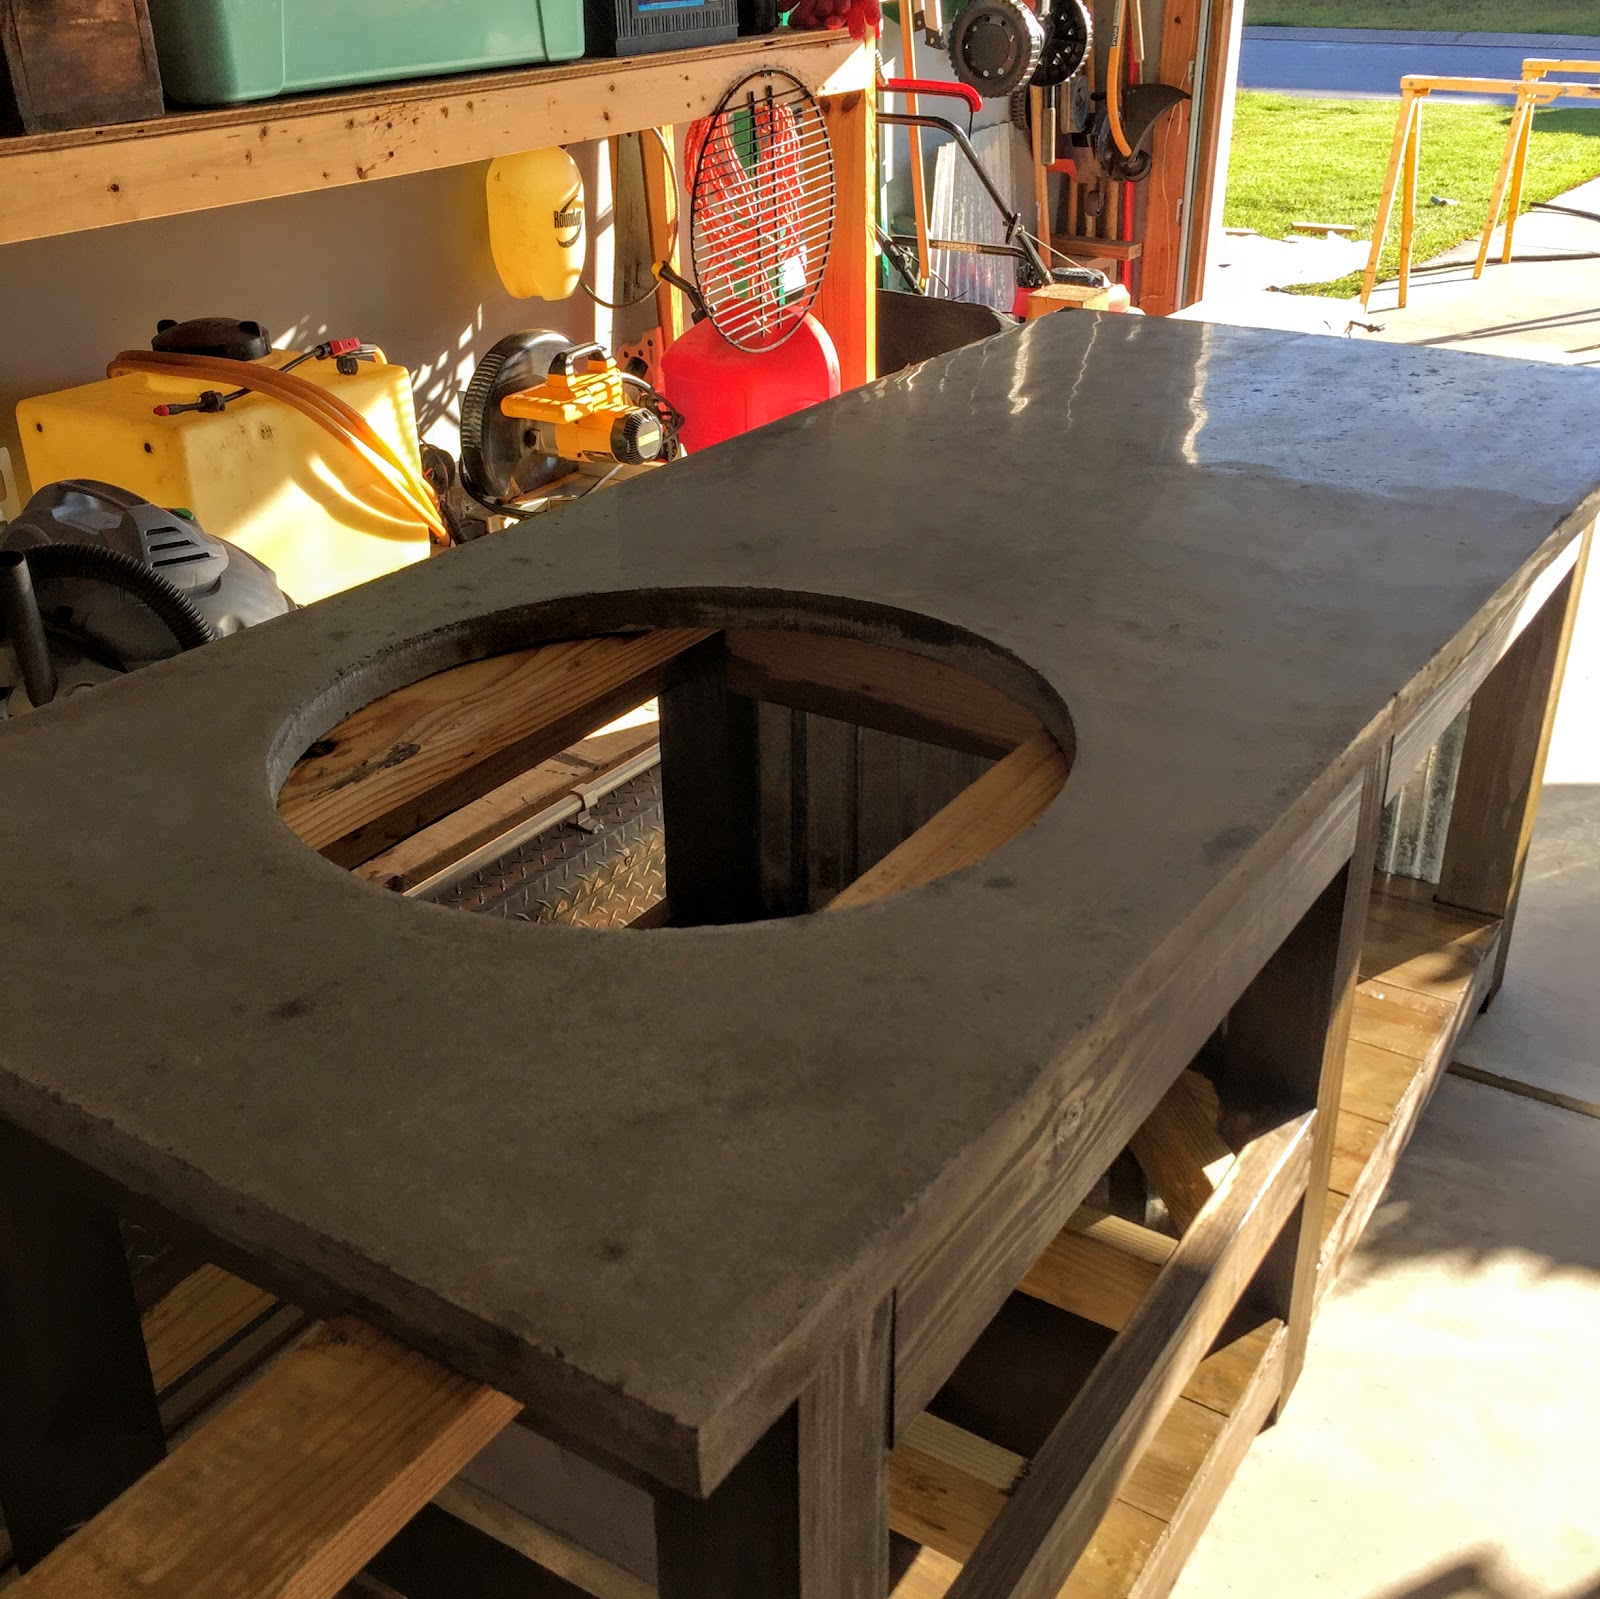 Ordinaire DIY Big Green Egg Table With Concrete Top And Barn Door | The Lowcountry  Lady. MATERIALS U0026 TOOLS: